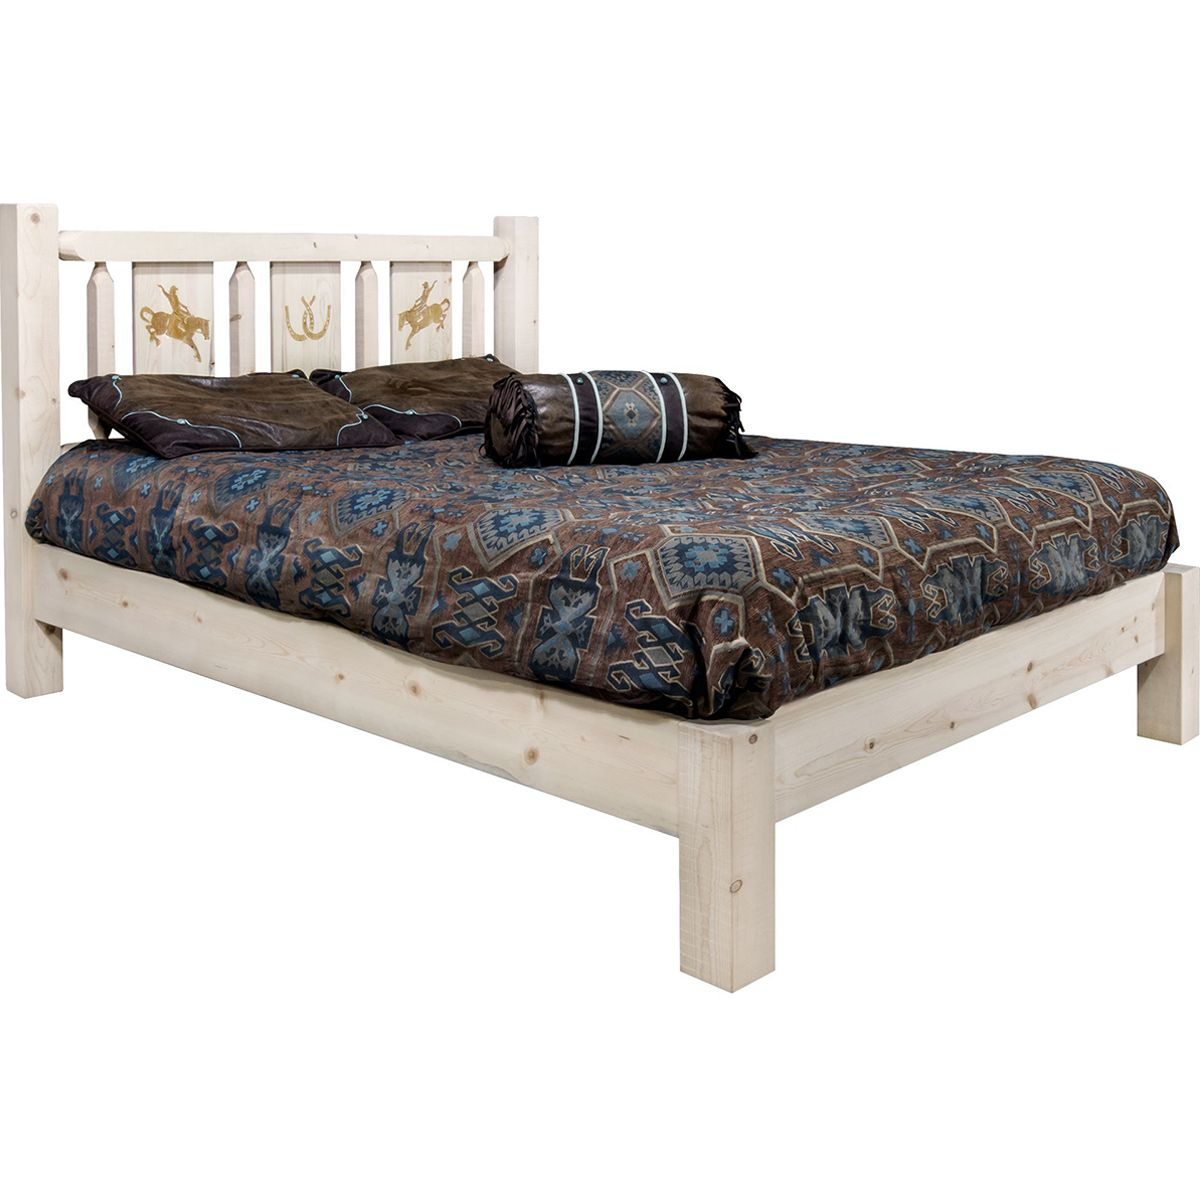 Ranchman's Platform Bed with Laser-Engraved Bronc Design - Queen